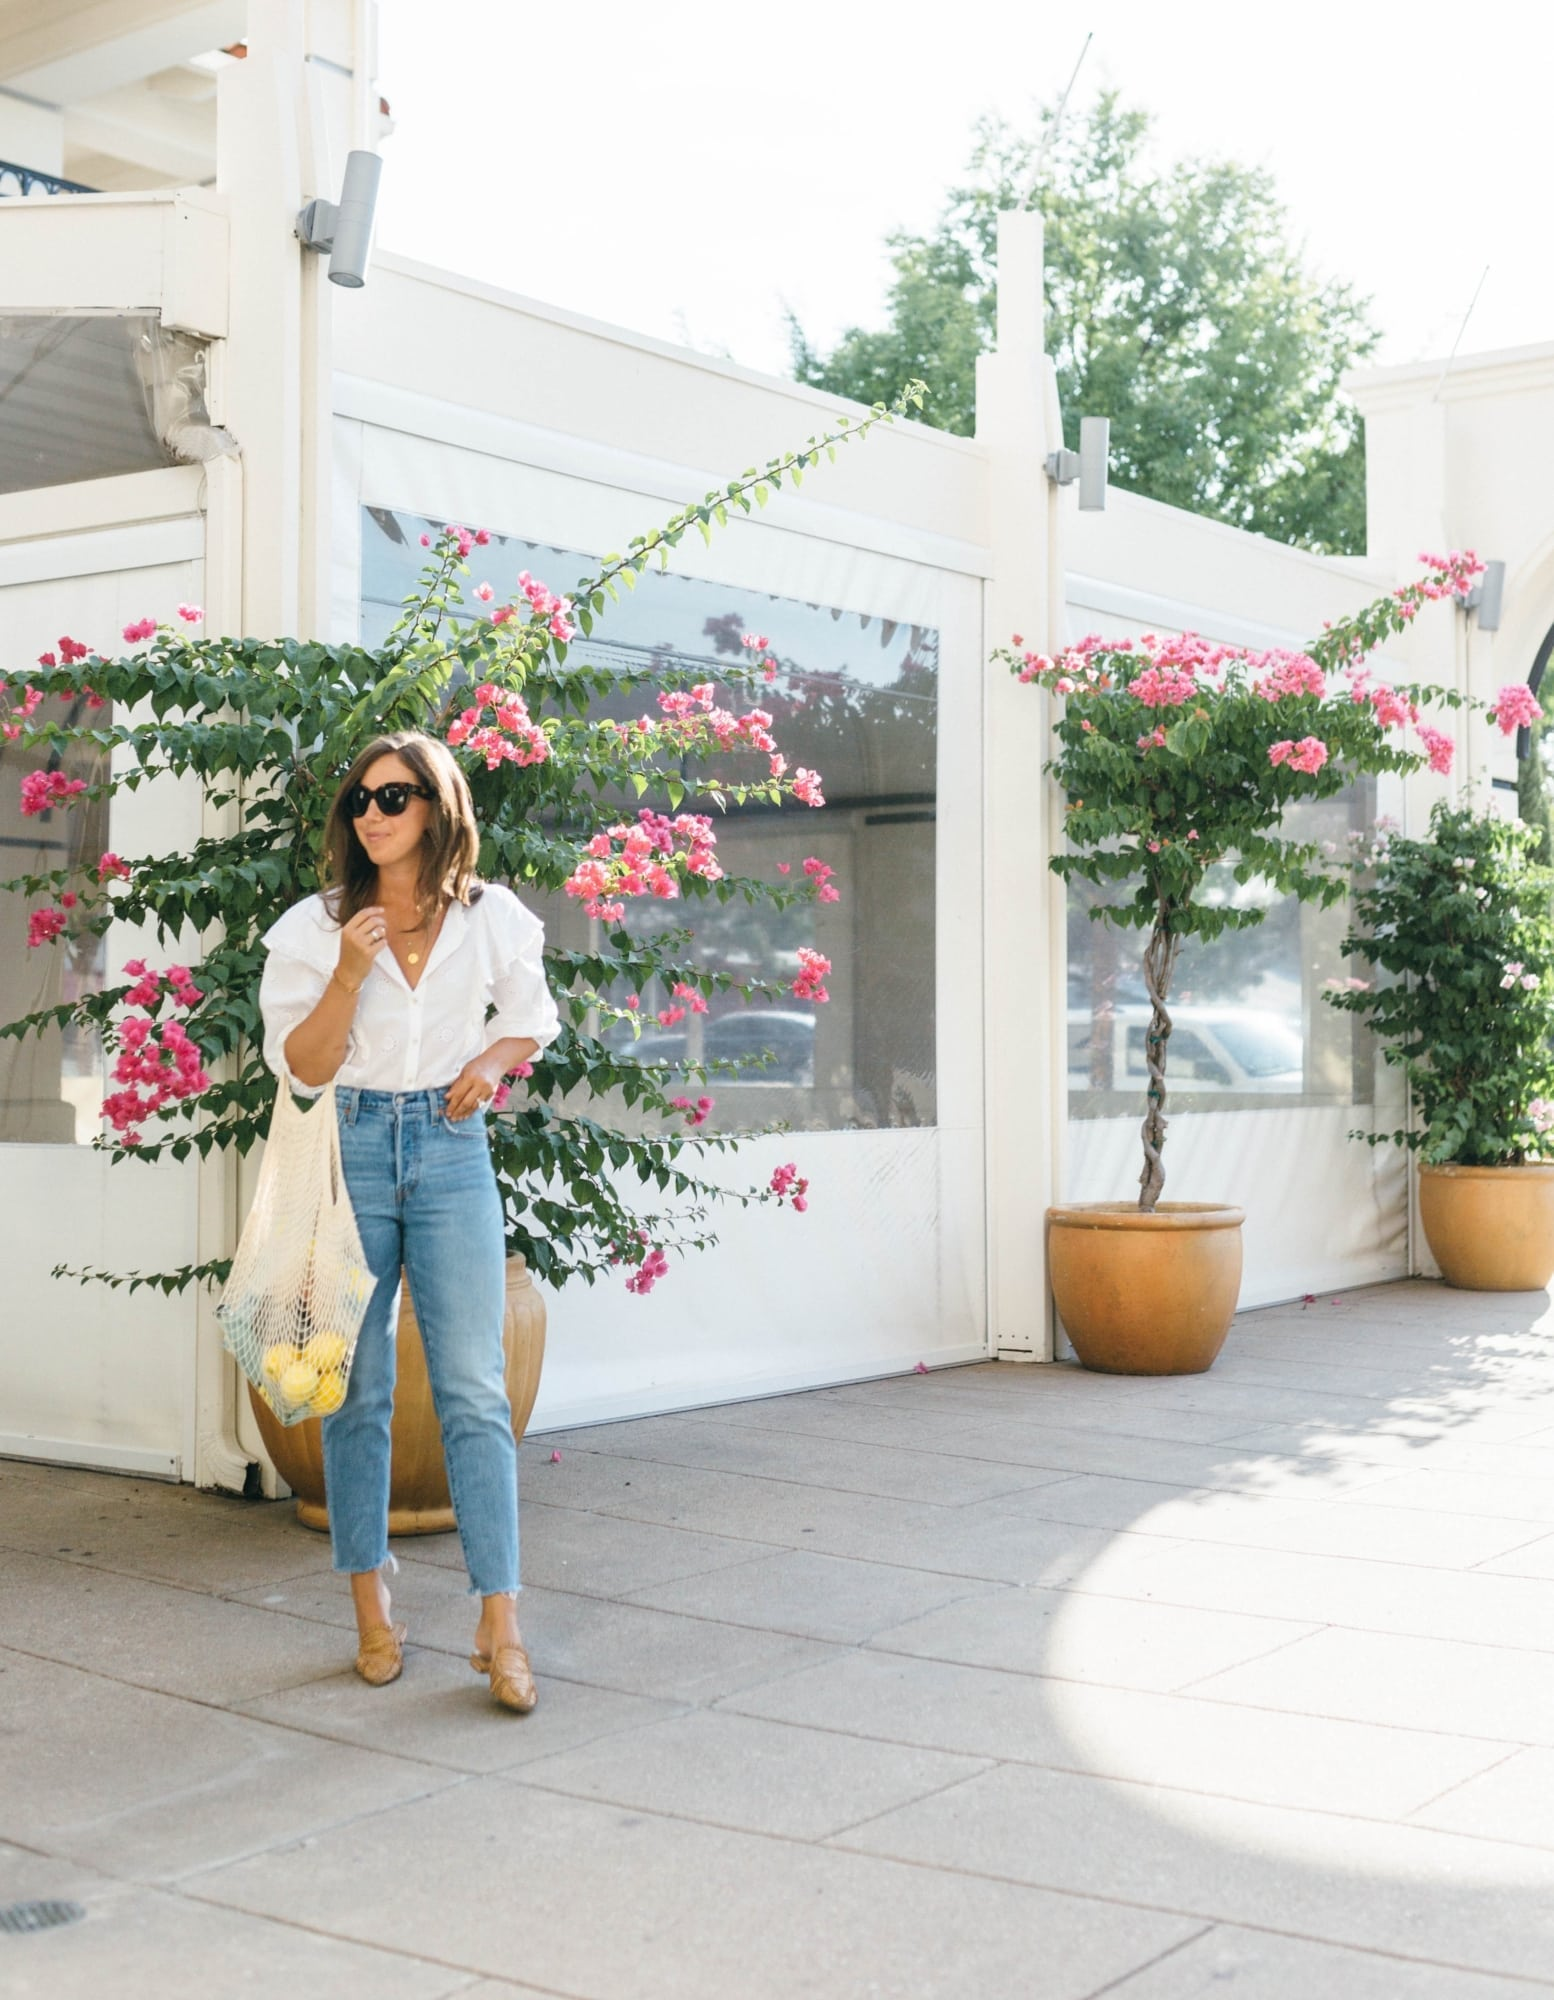 Ali Schilling in Levi Jeans and White Blouse